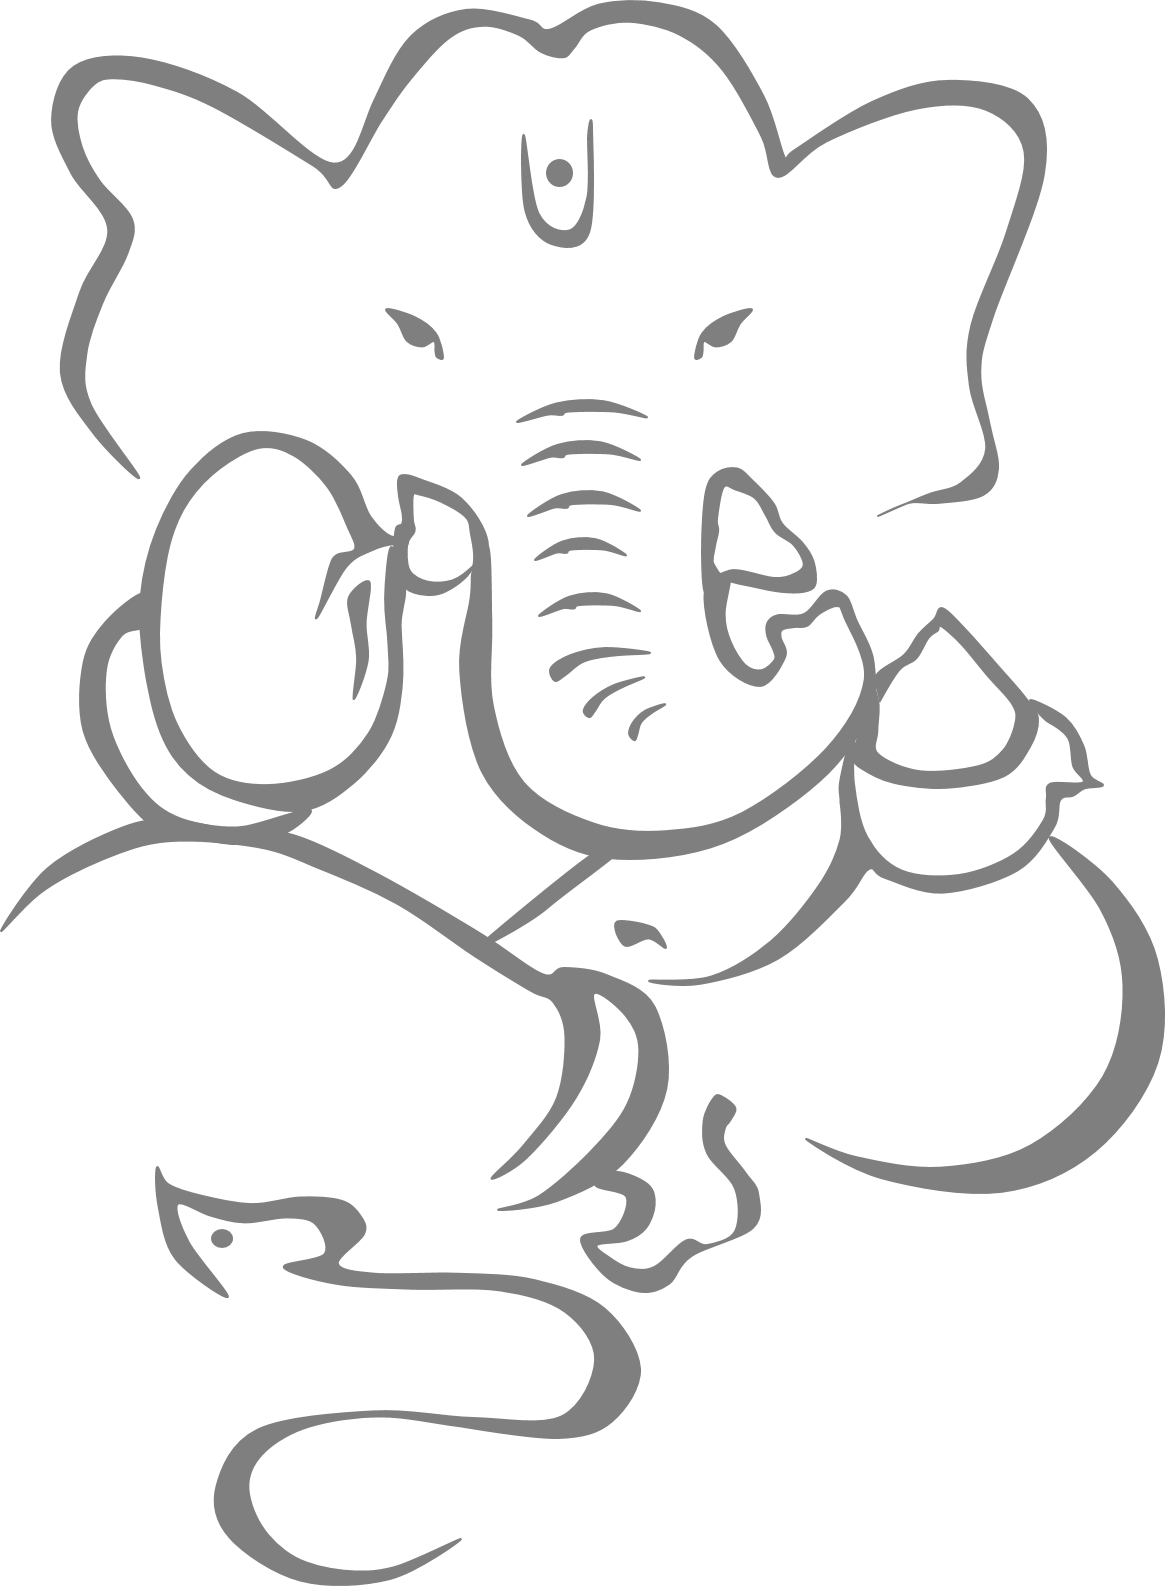 Ganesh vector ganapathy. Free ganesha cliparts download